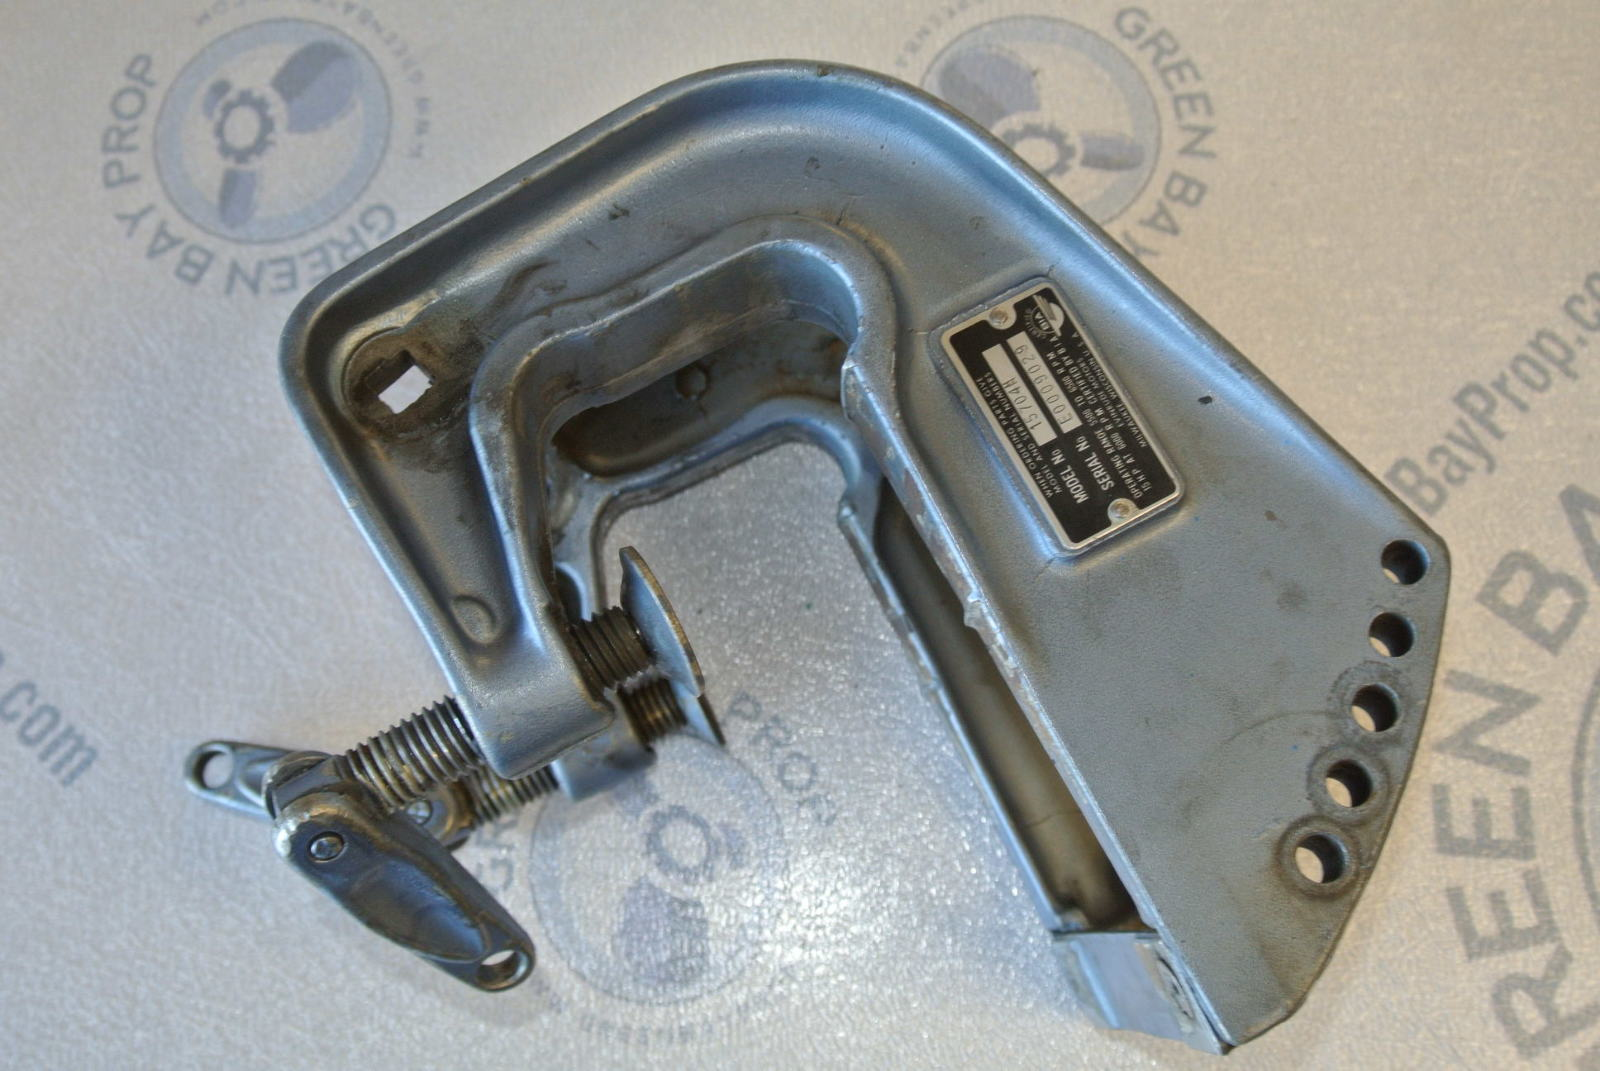 hight resolution of 327928 327929 10 15 hp evinrude johnson outboard motor stern transom bracket and clamps